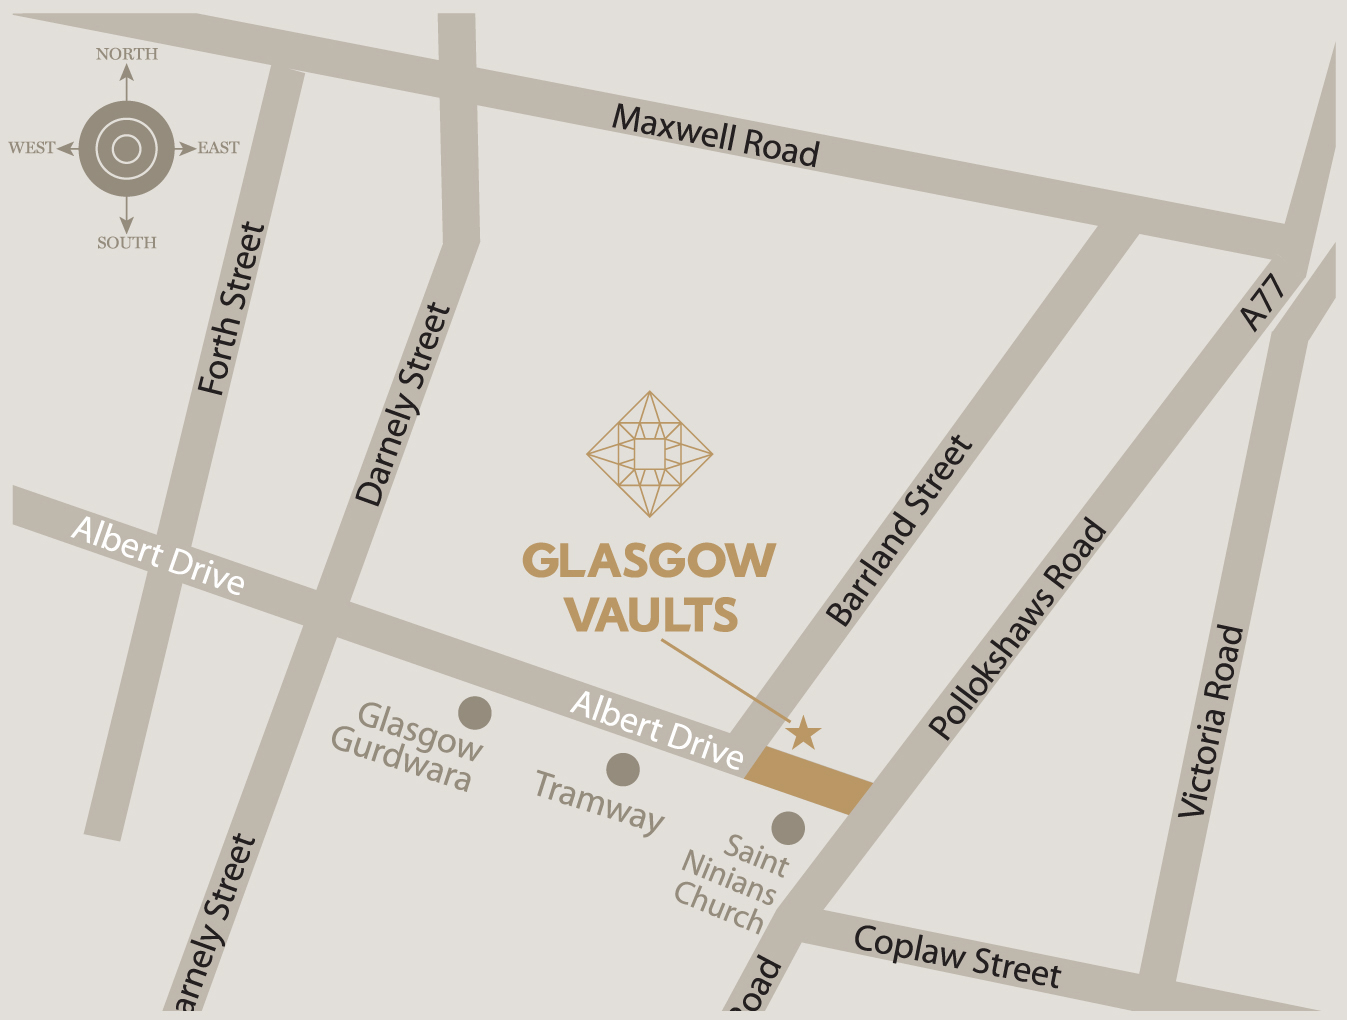 Safety Deposit Box Facility in Glasgow